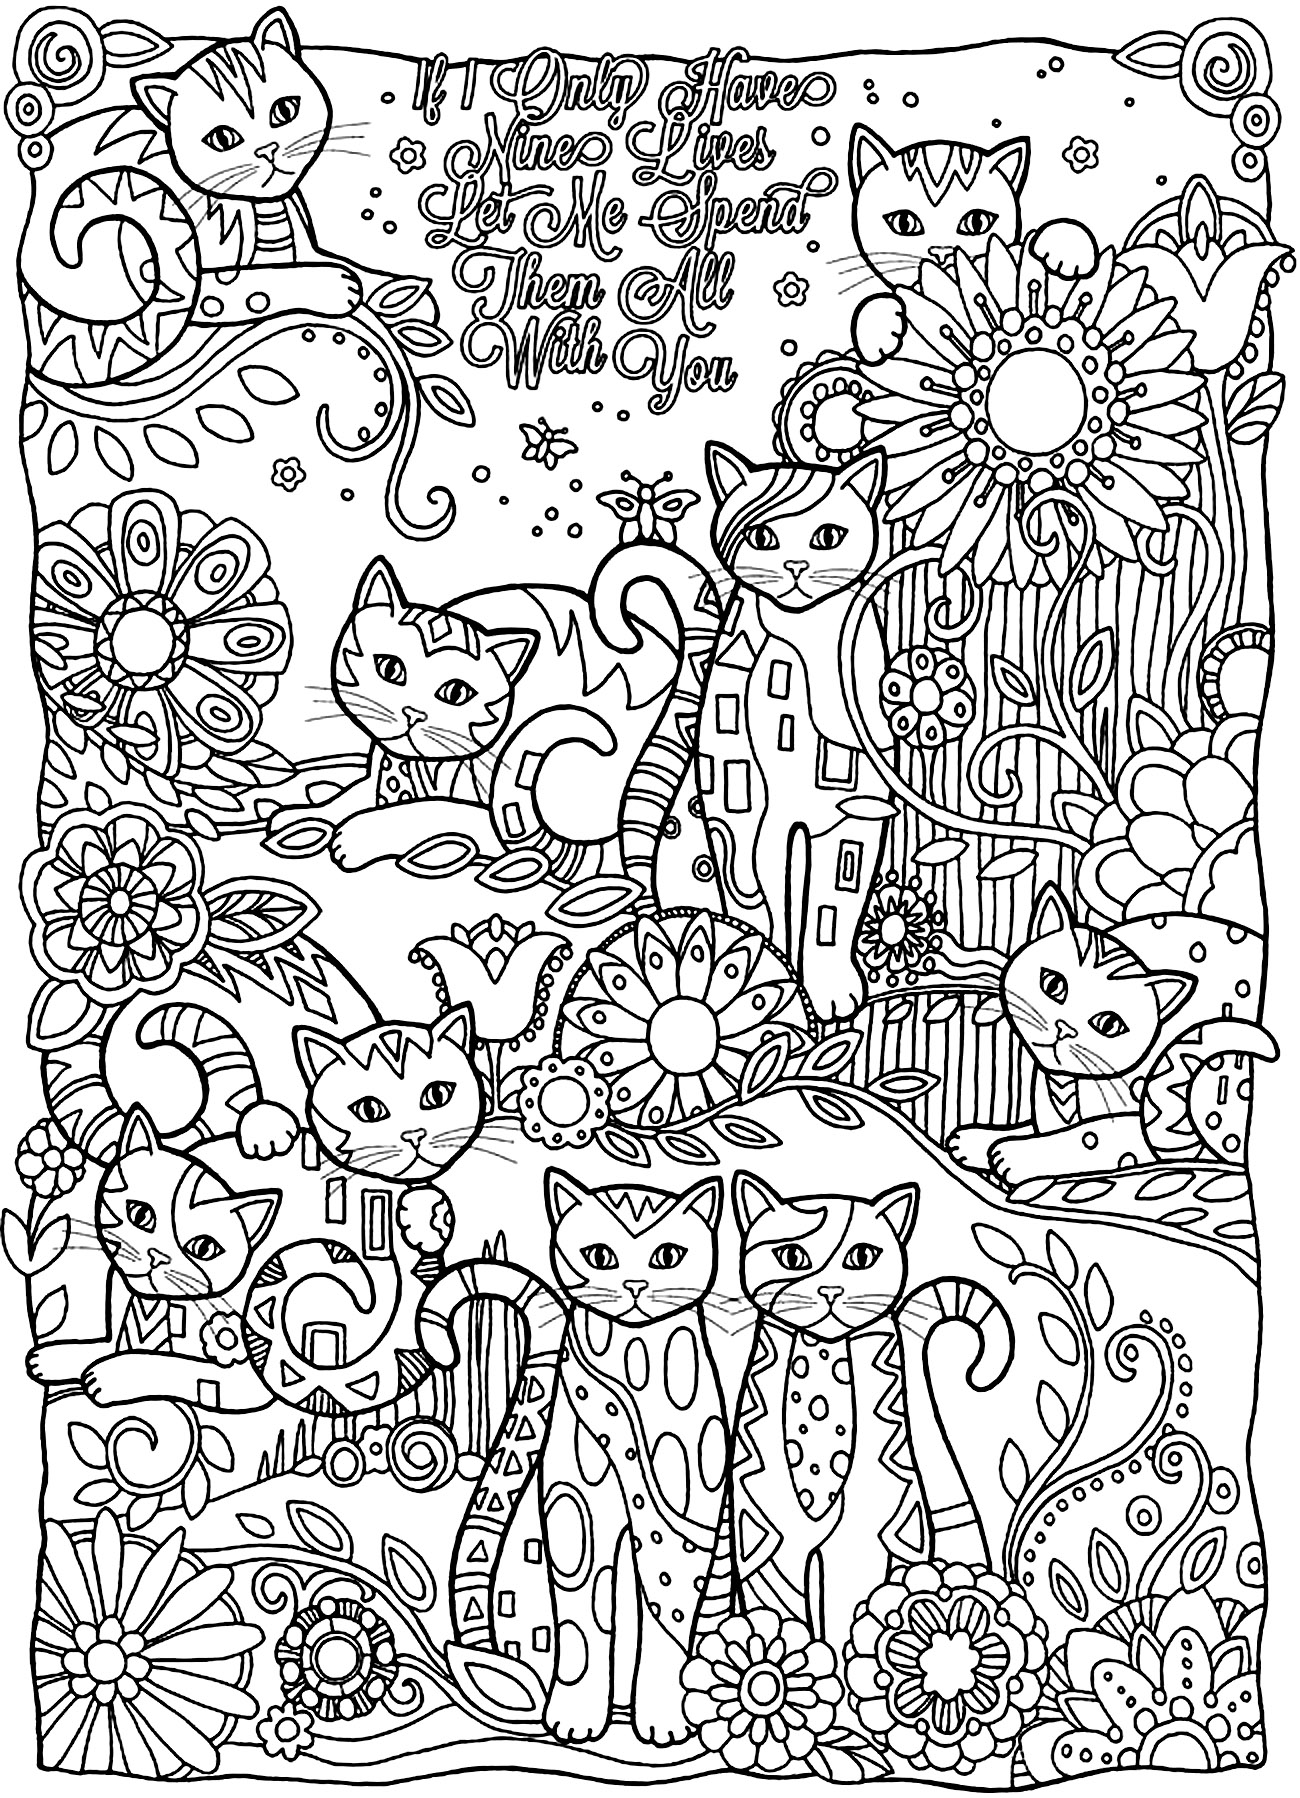 Cute cats, just missing for colors